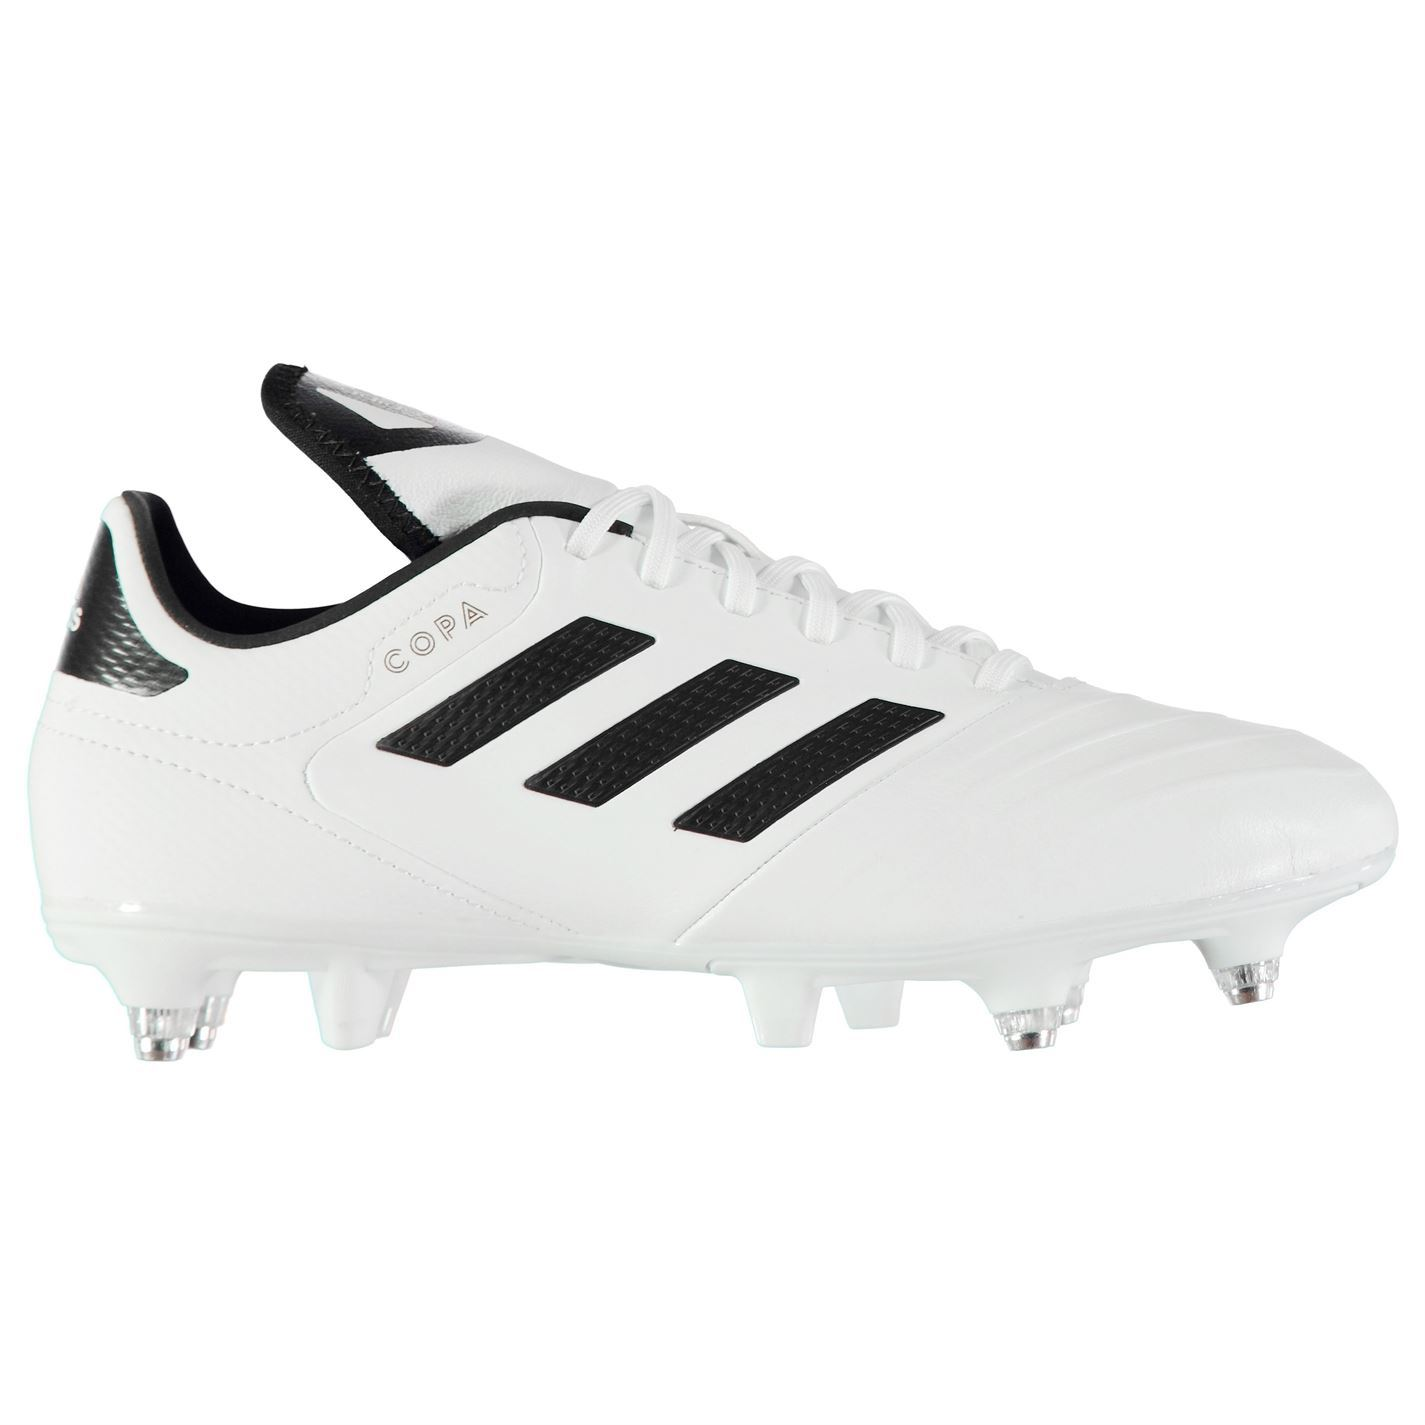 b7666728 adidas Mens Copa 18.3 SG Football Boots Soft Ground Lace Up Padded Ankle  Collar